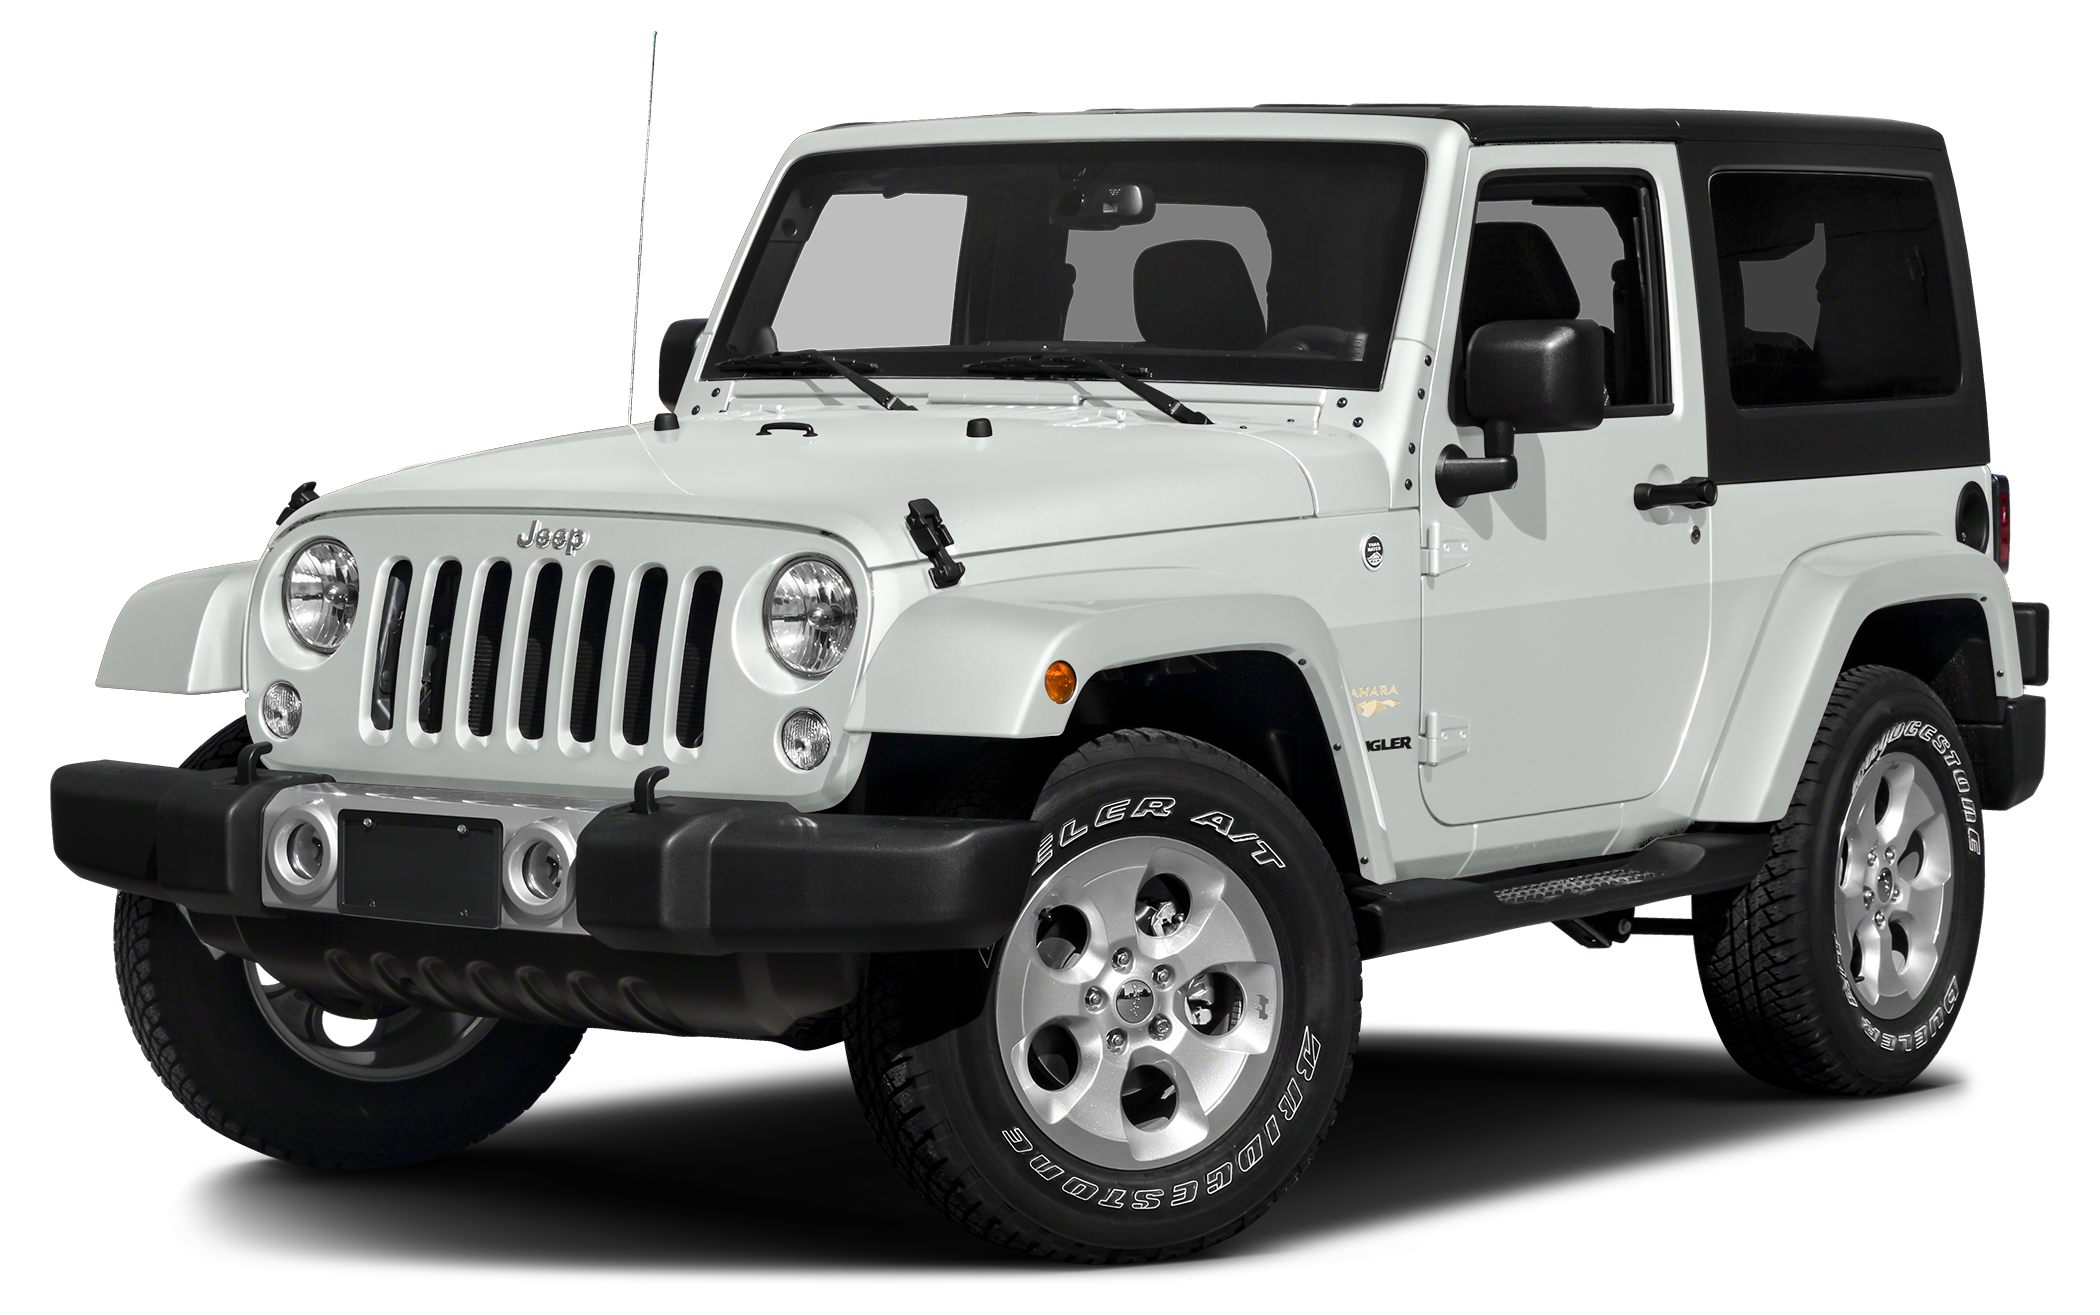 2017 Jeep Wrangler Sahara This Sahara is for Jeep addicts the world over waiting for a rugged jewe